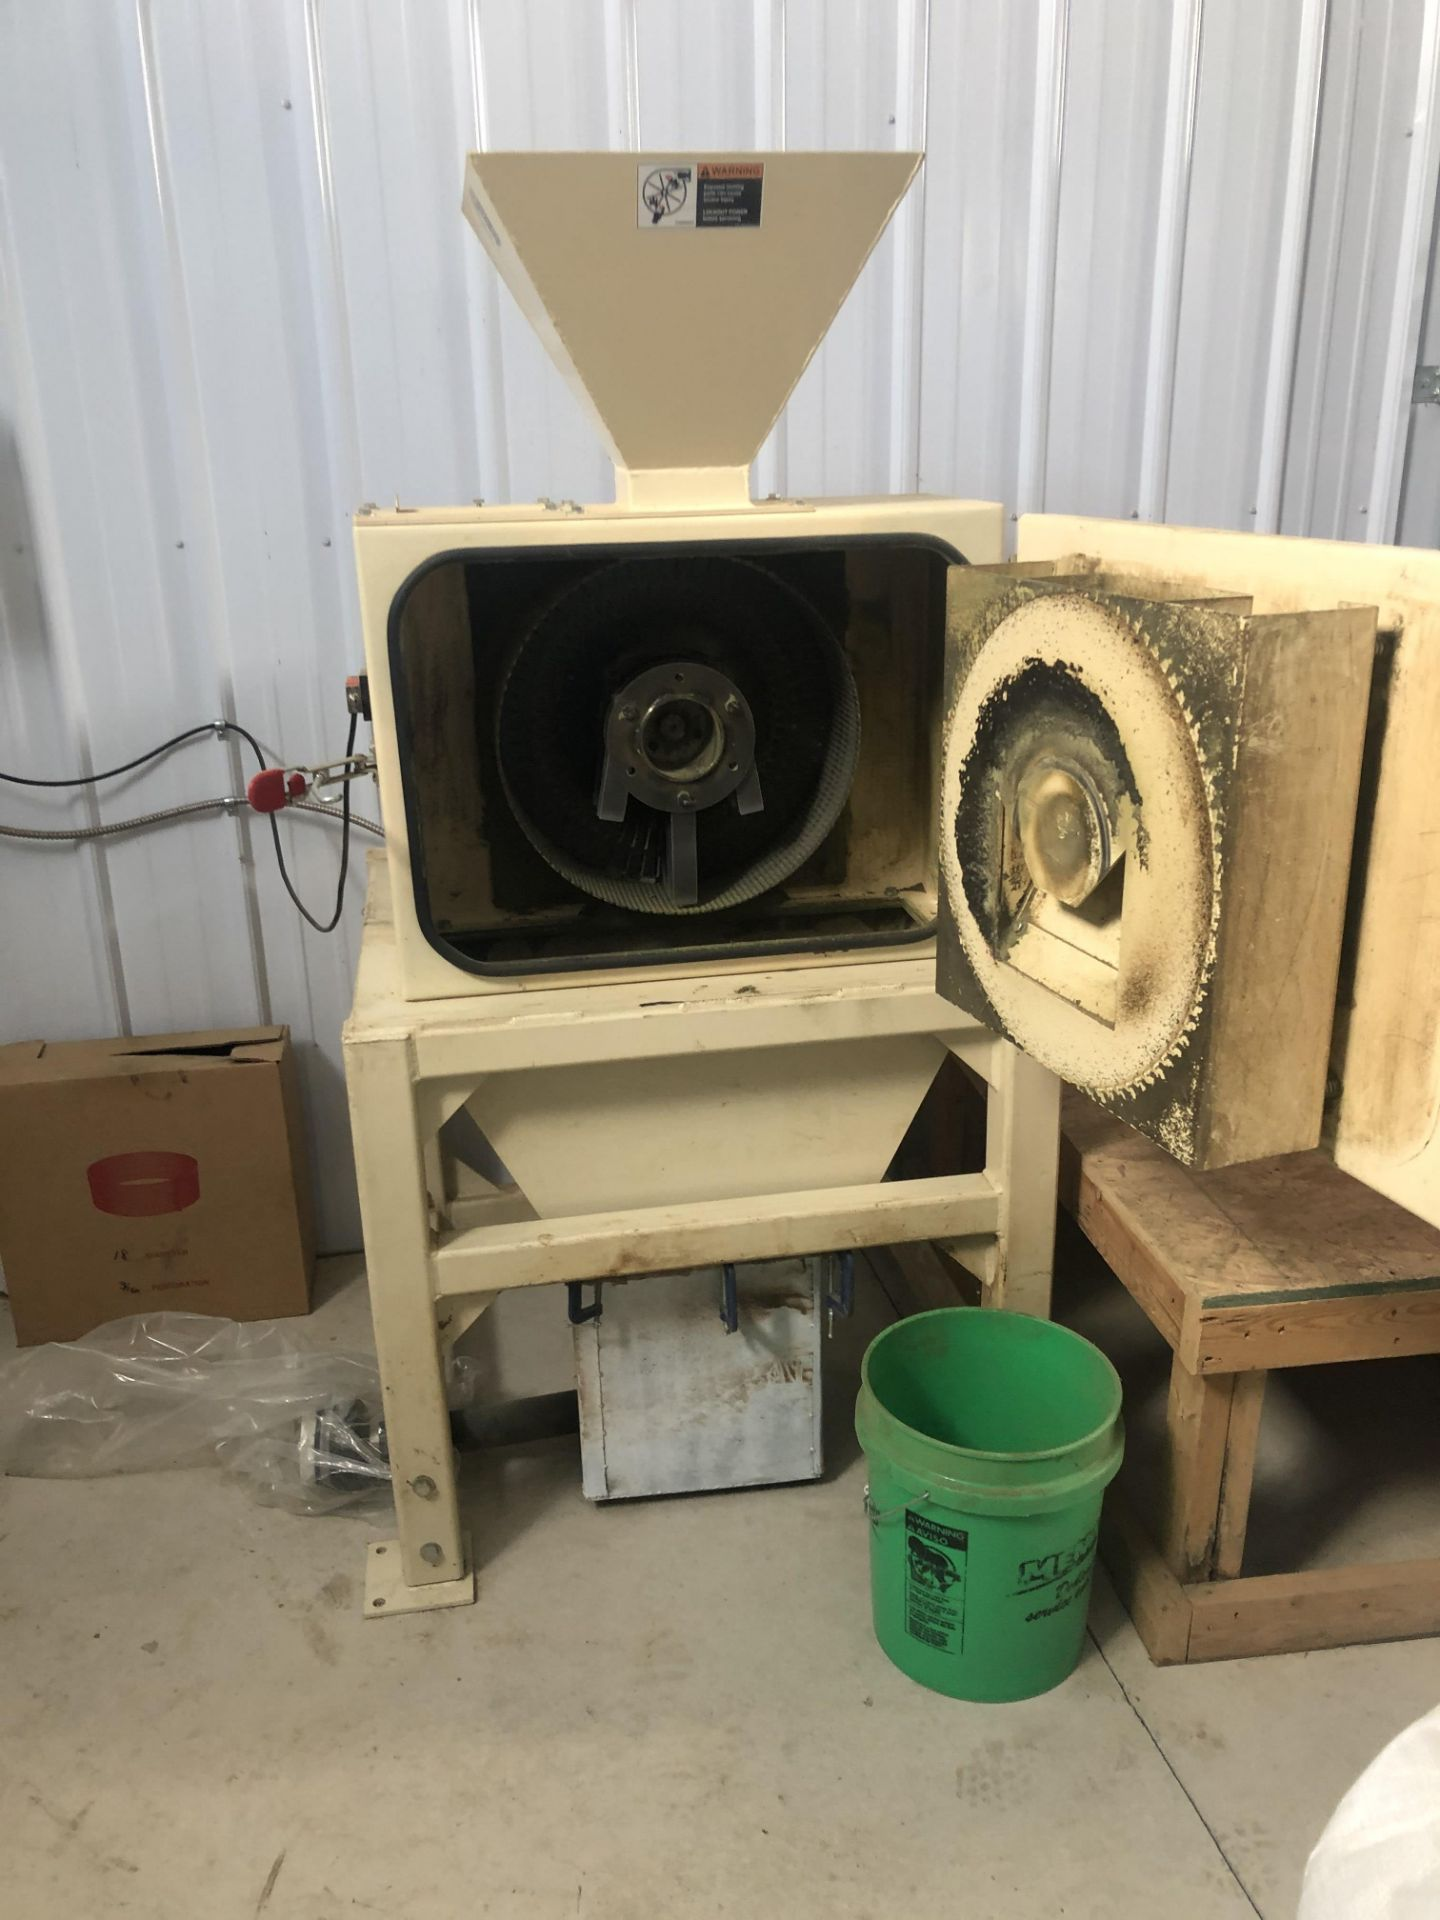 Used - MRX Supercritical CO2 Extractor Complete System. See details in description full inventory - Image 19 of 29